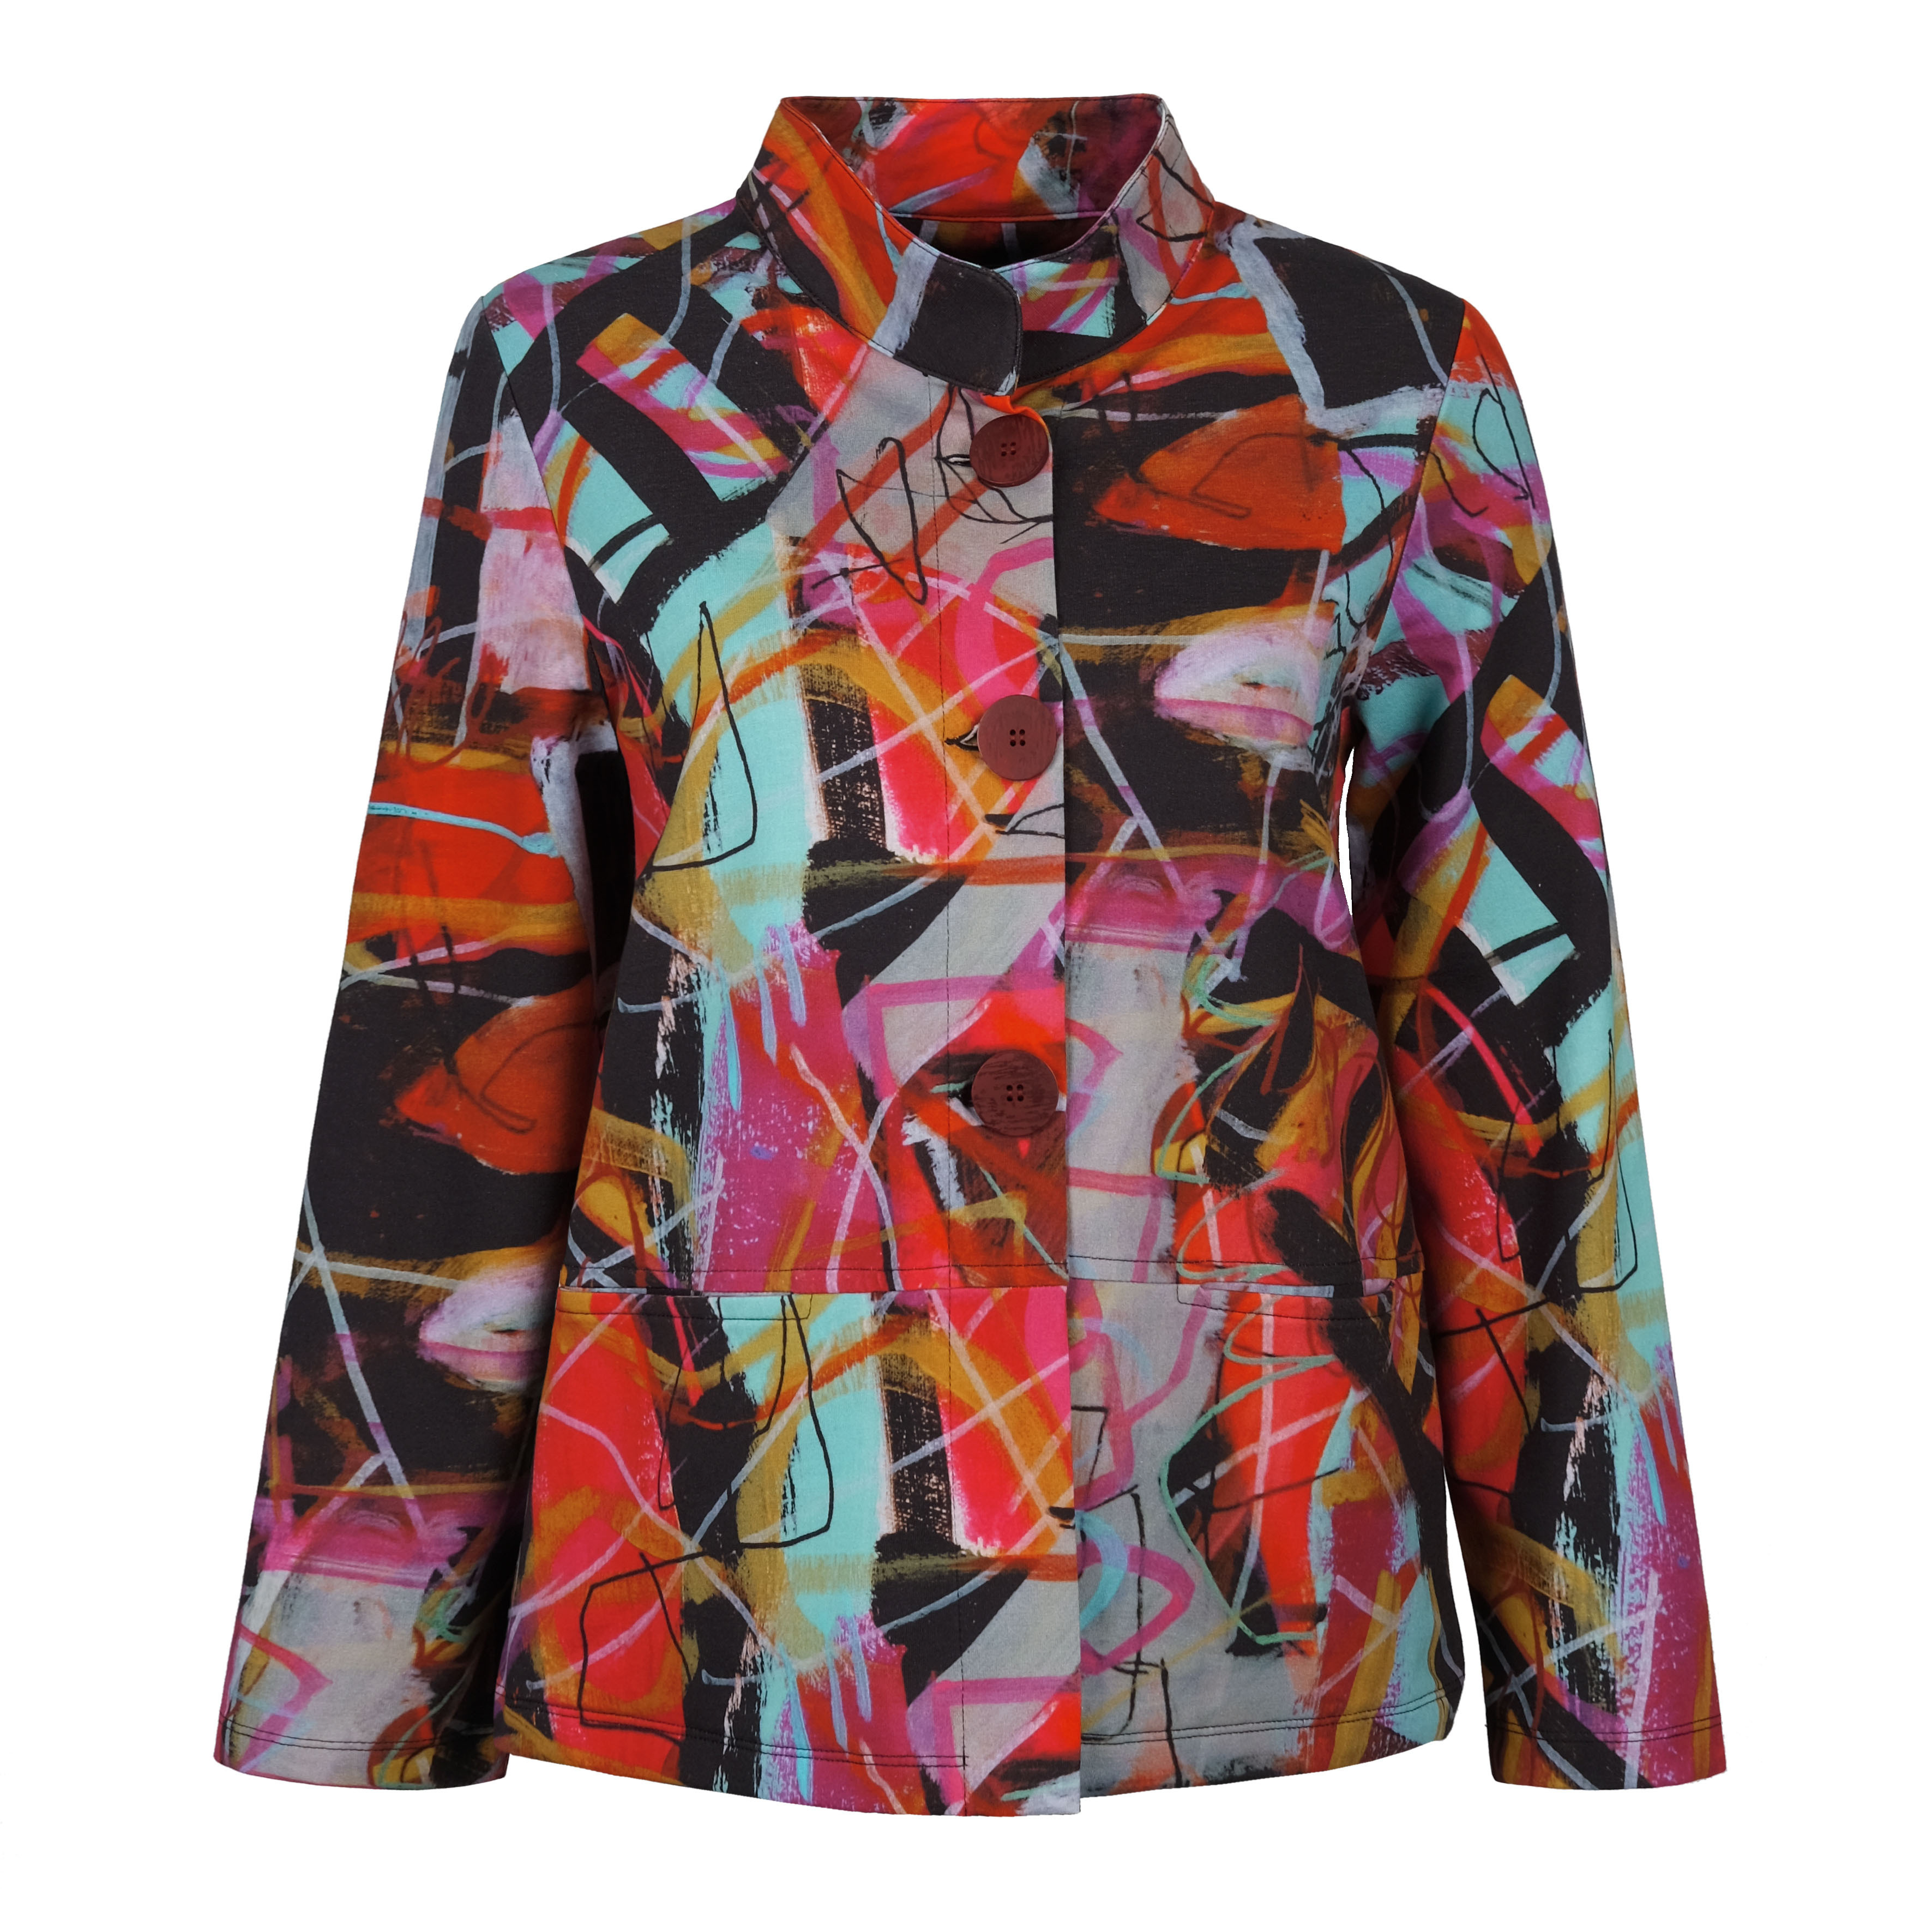 Simply Art Dolcezza: Red 3 Graffiti Abstract Art Flared Jacket (1 Available at Special Price!) Dolcezza_SimplyArt_70628